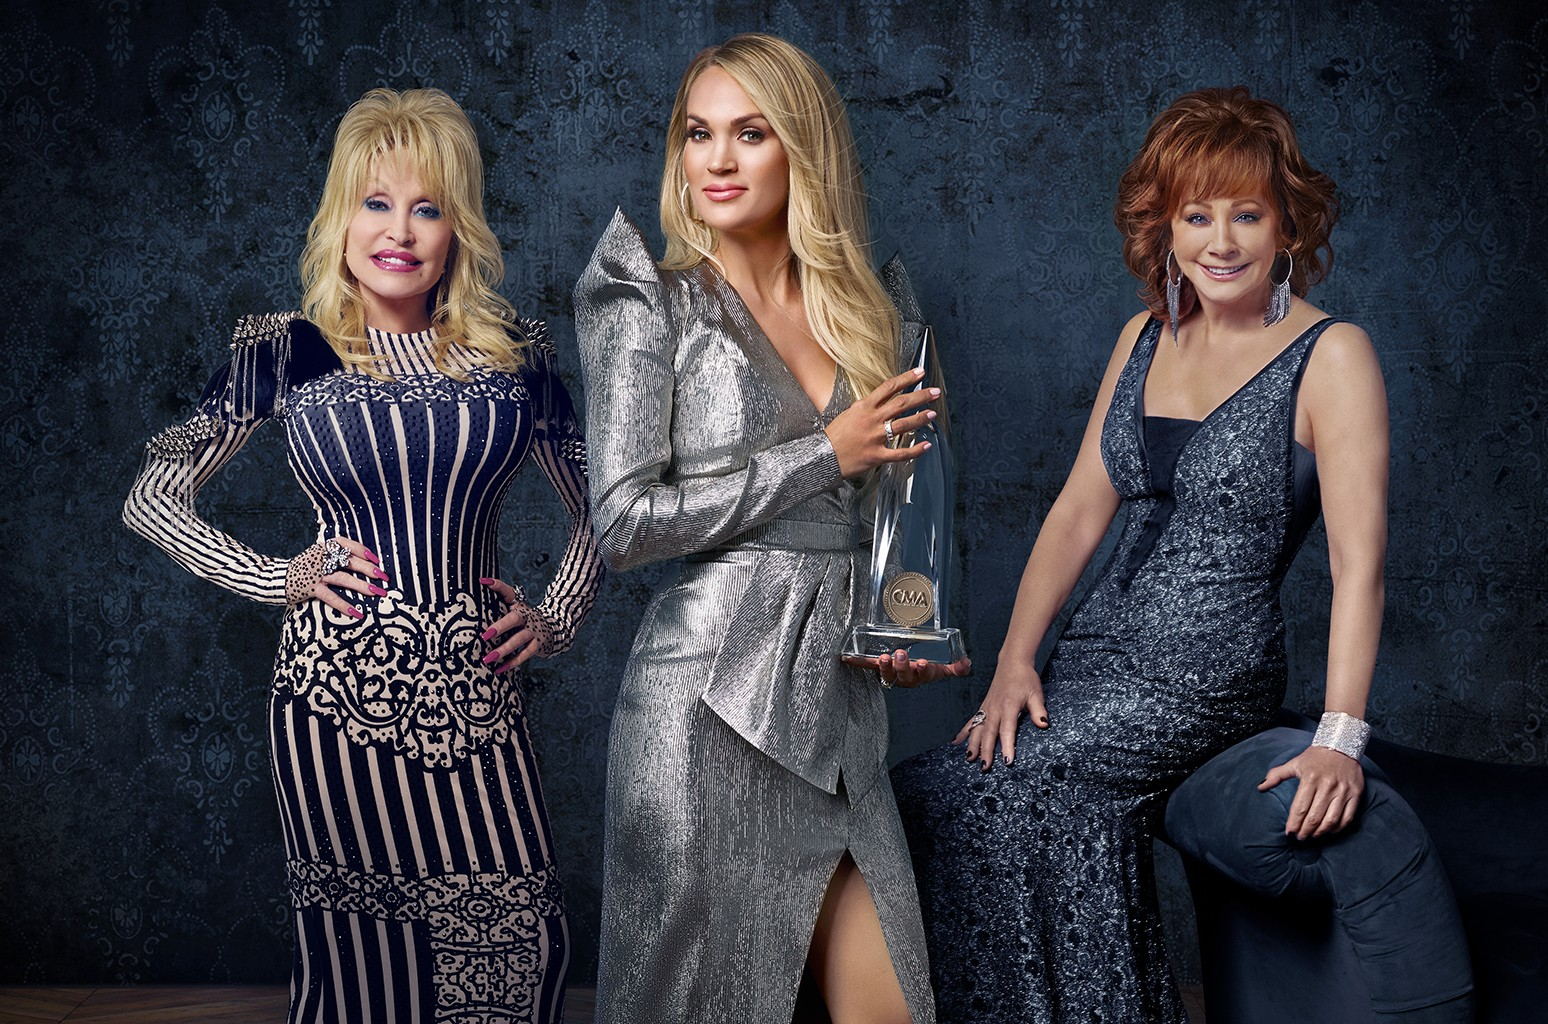 Carrie Underwood, Reba McEntire and Dolly Parton